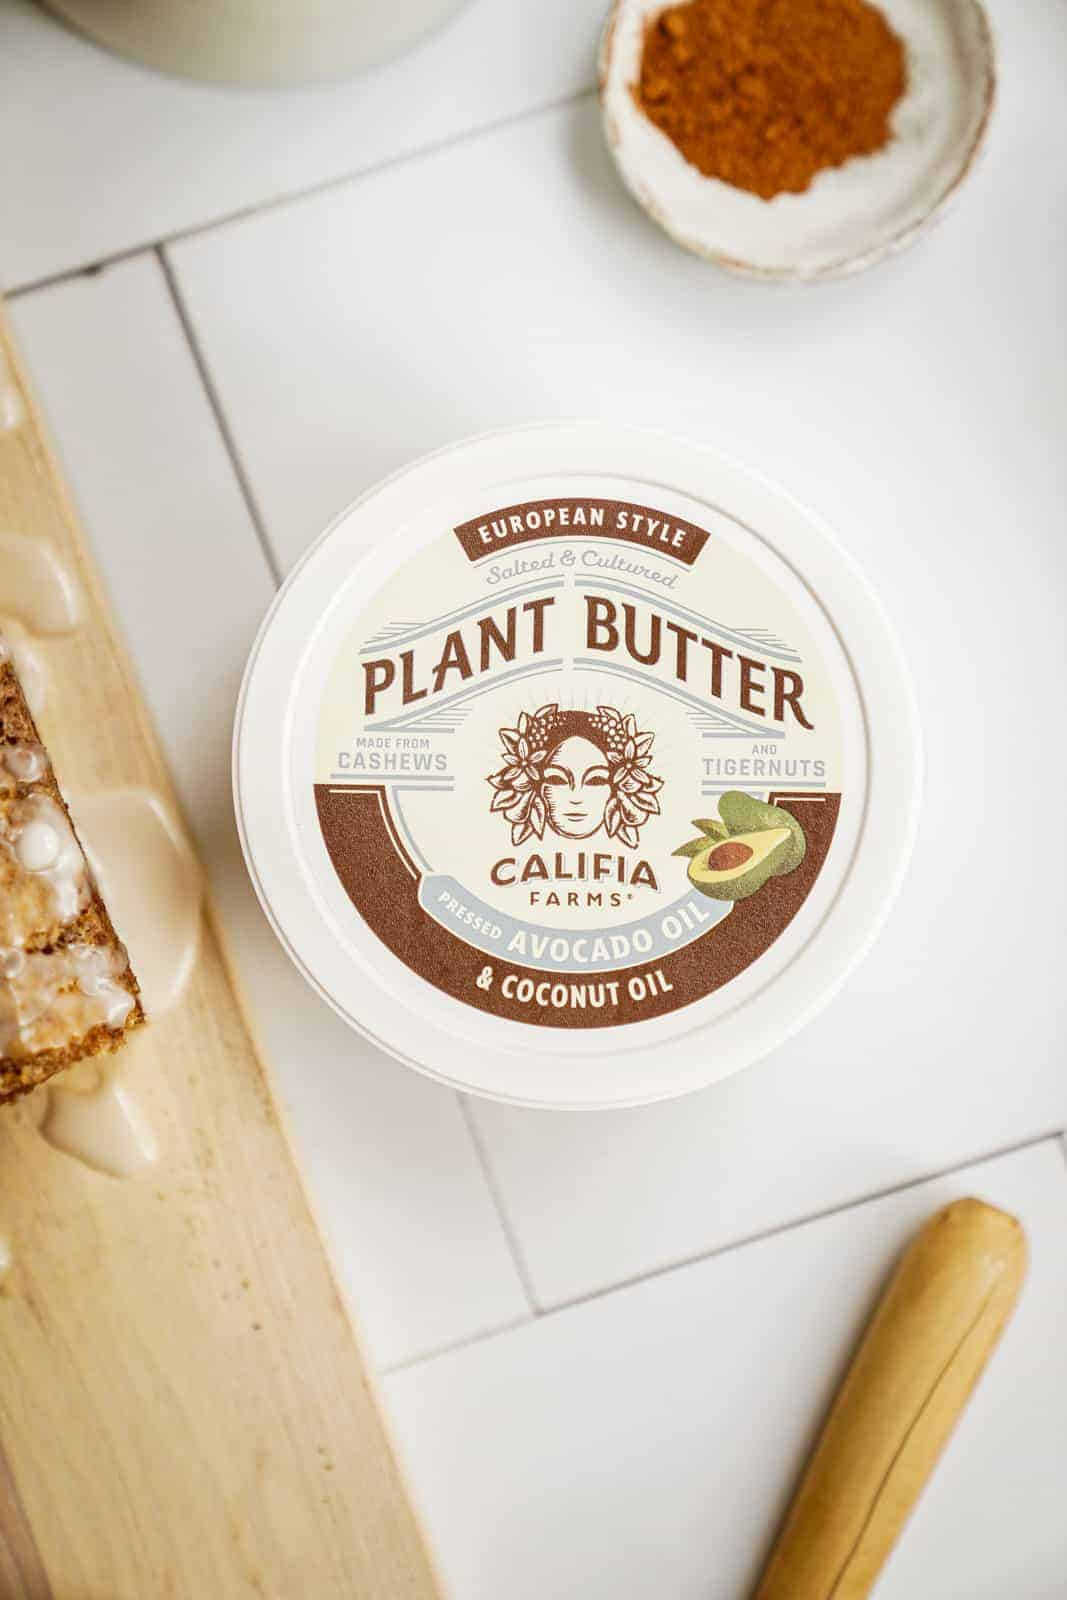 Container of Califia Farms Plant Butter on countertop